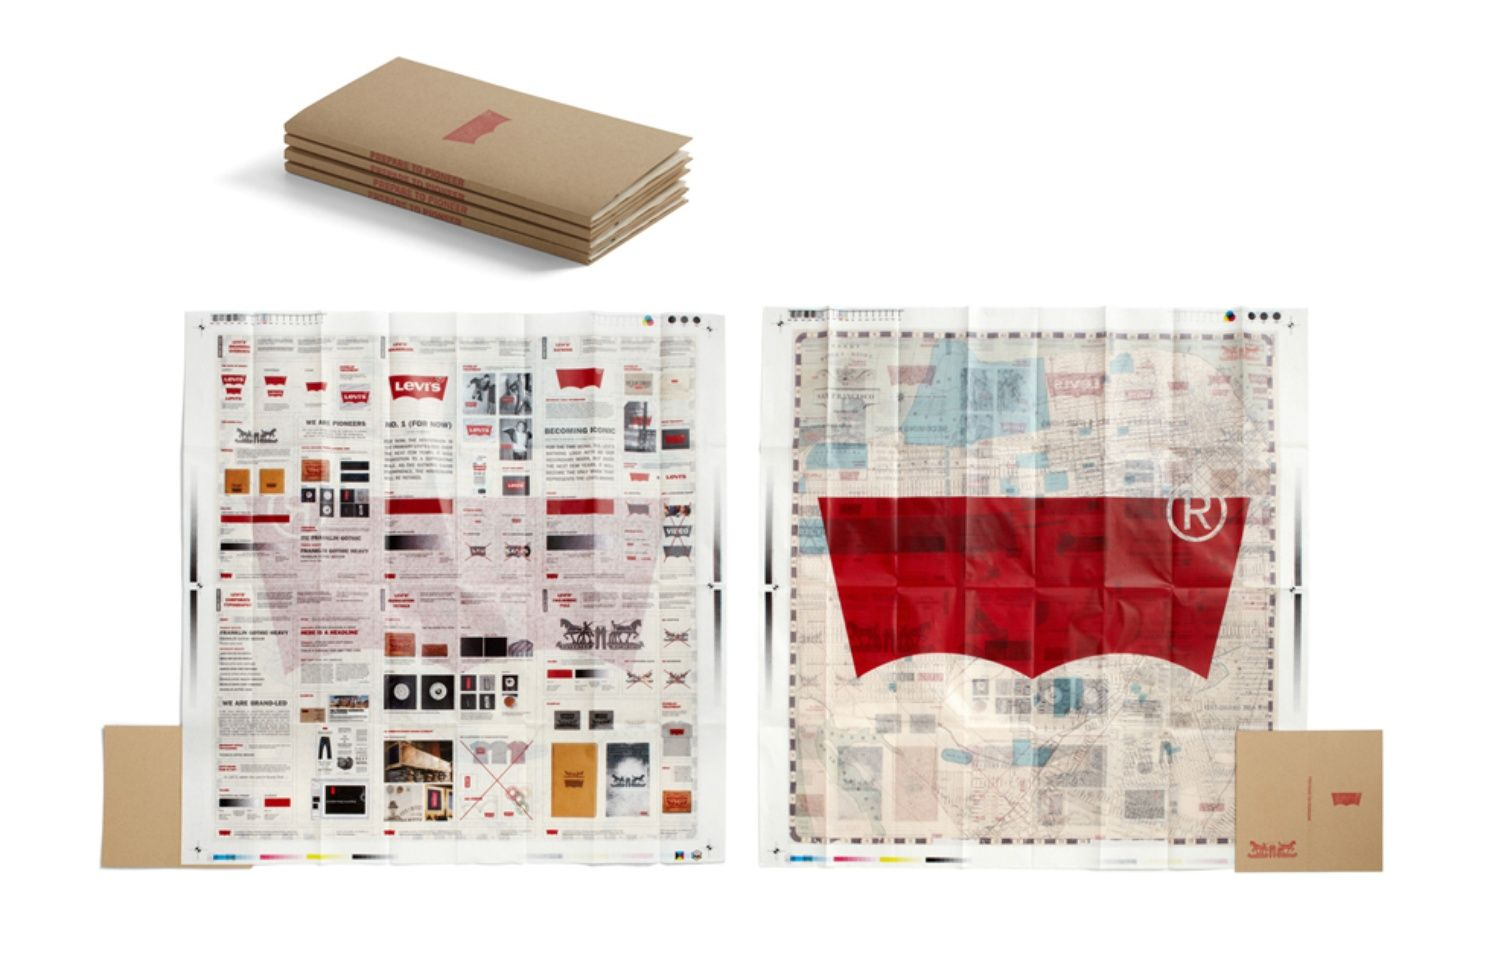 Levi S Brand Standards Map Brand Book Design Competitions Brand Guidelines